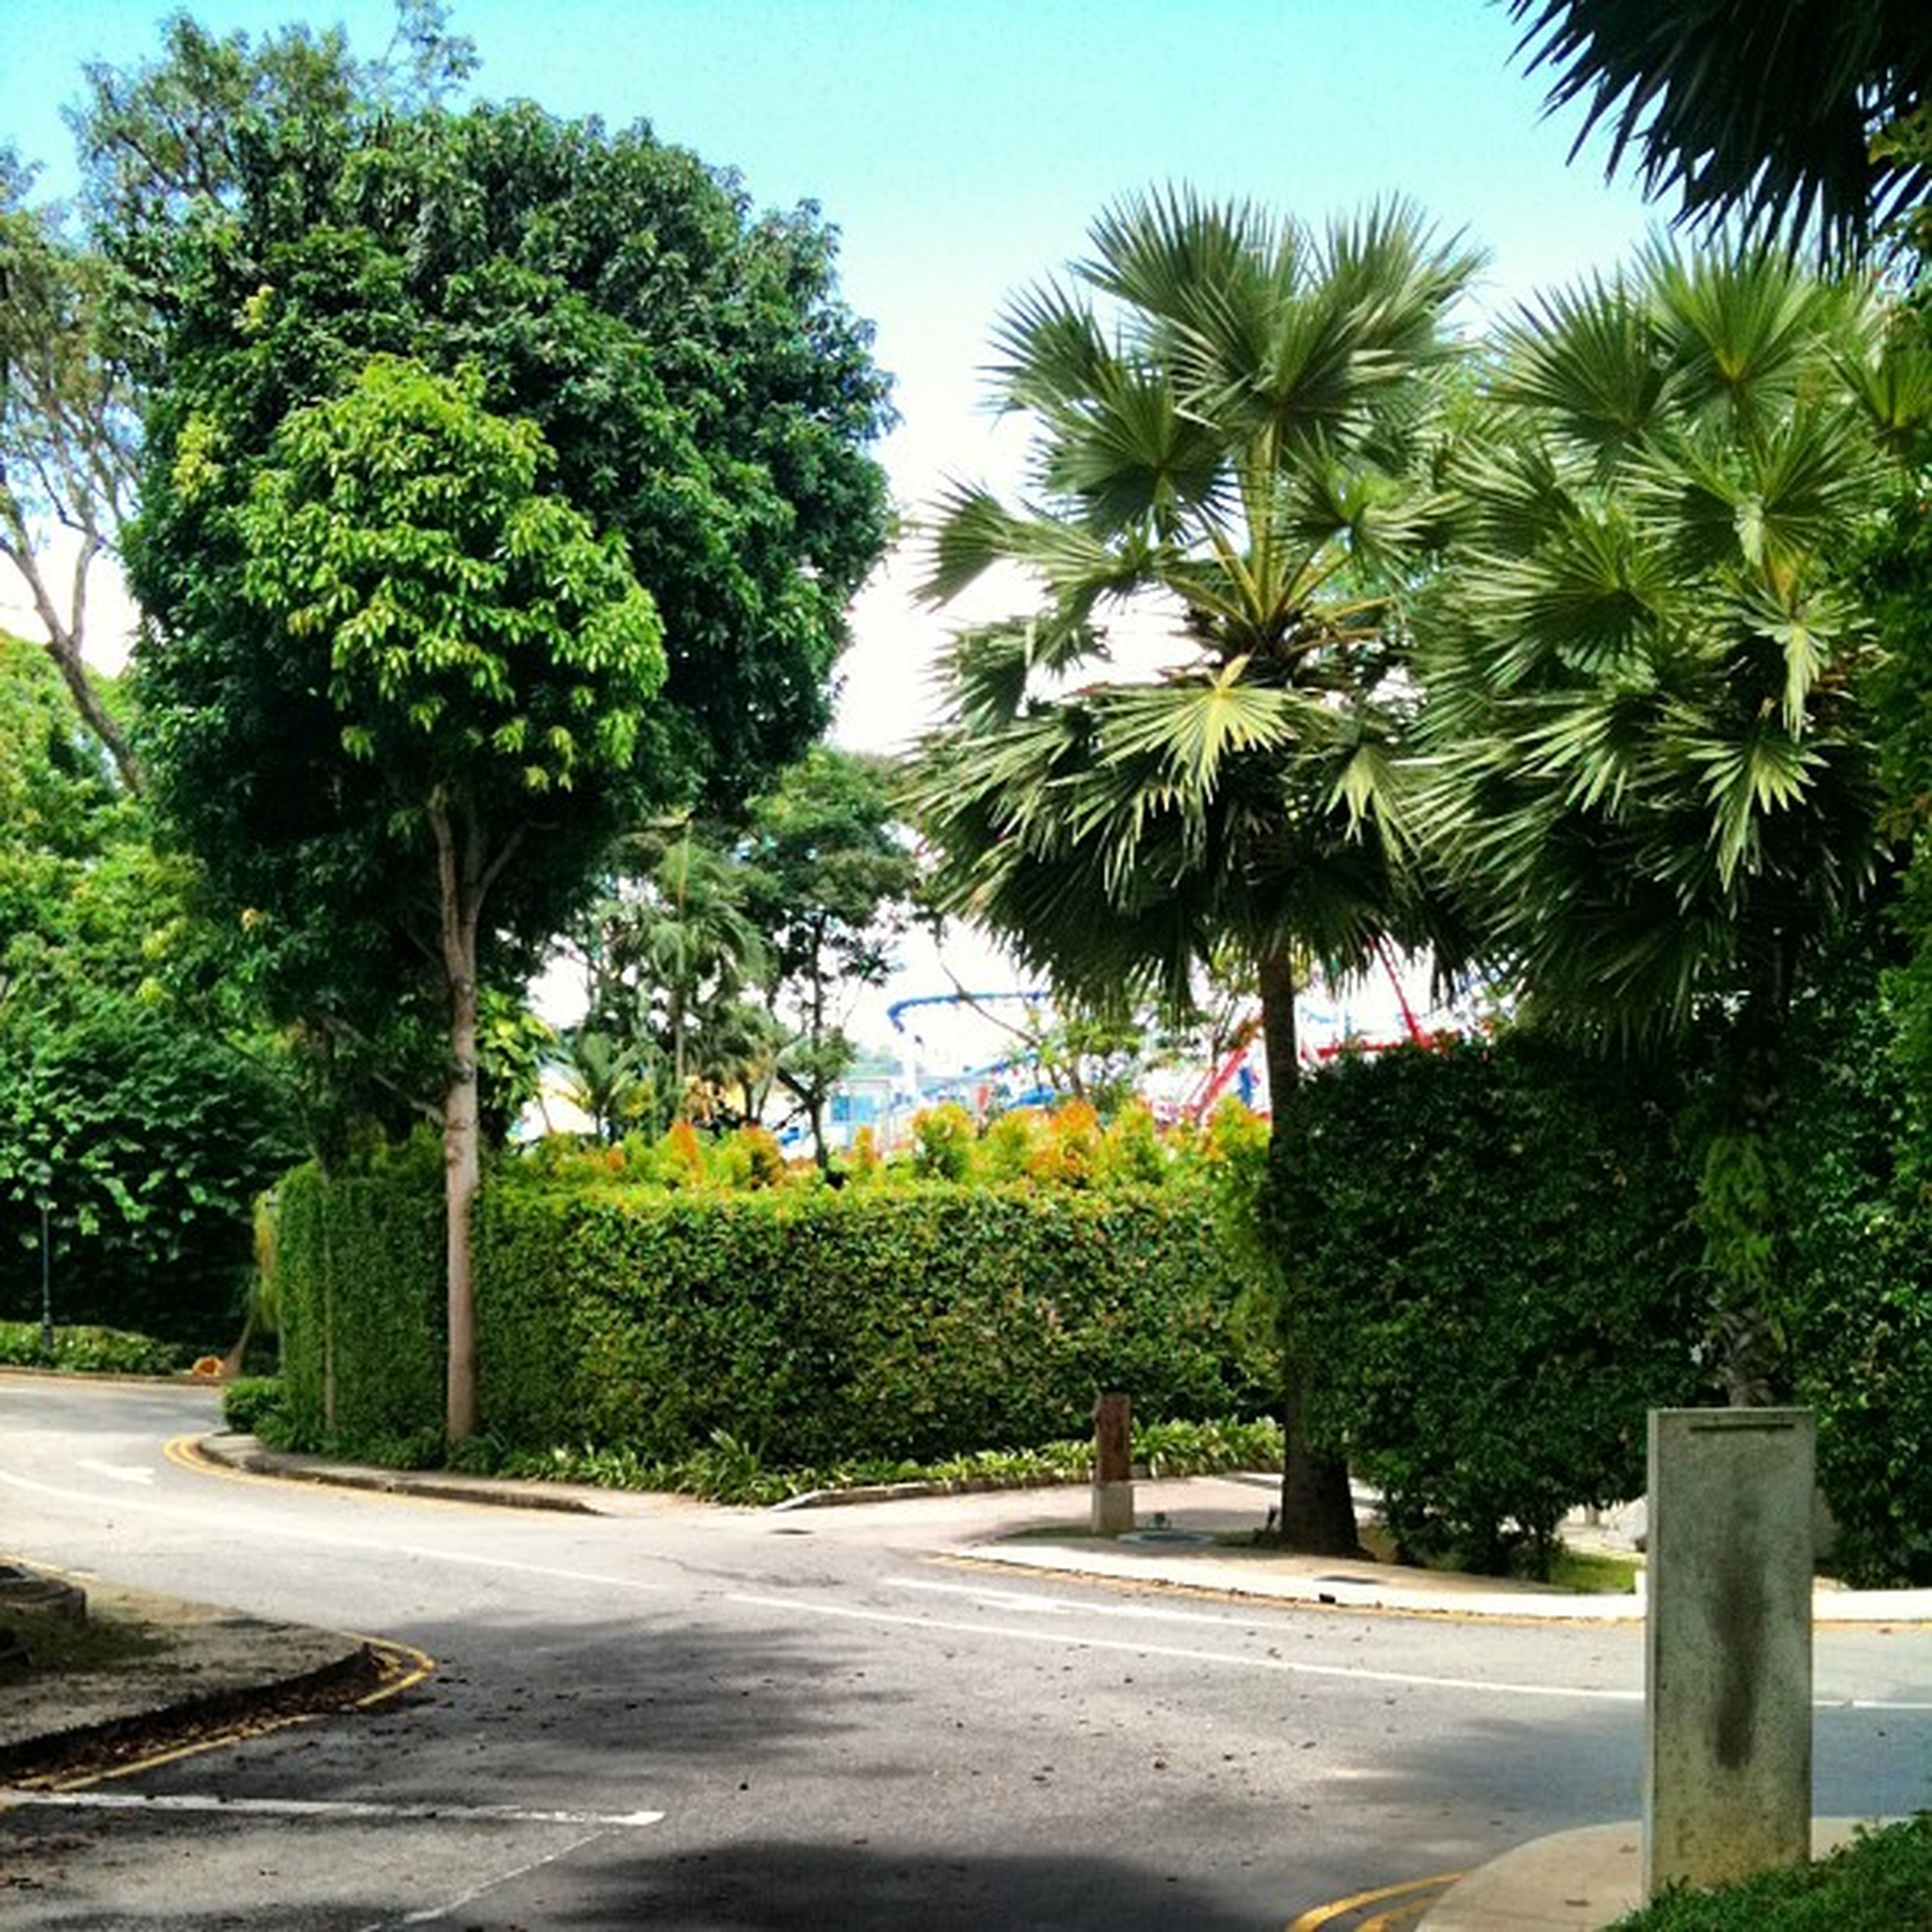 tree, road, the way forward, transportation, palm tree, growth, green color, street, sunlight, clear sky, treelined, road marking, sky, day, shadow, footpath, diminishing perspective, street light, nature, blue